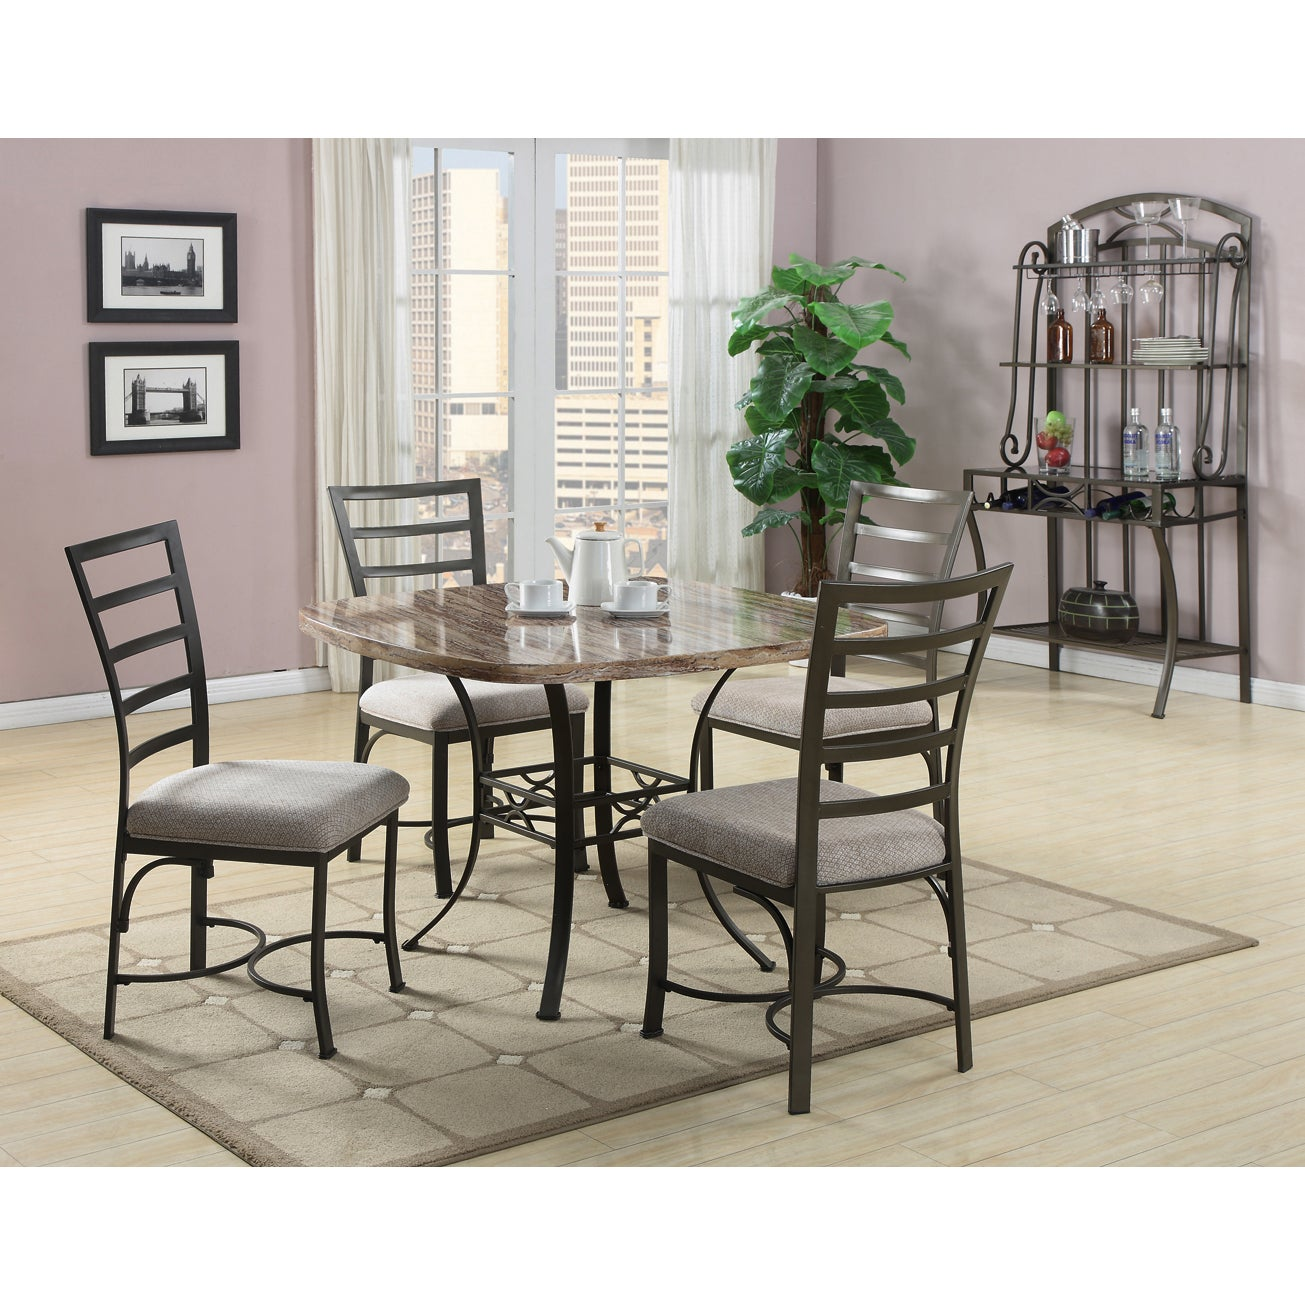 Val 5 Piece White Faux Marble Top Dining Set - Thumbnail 0